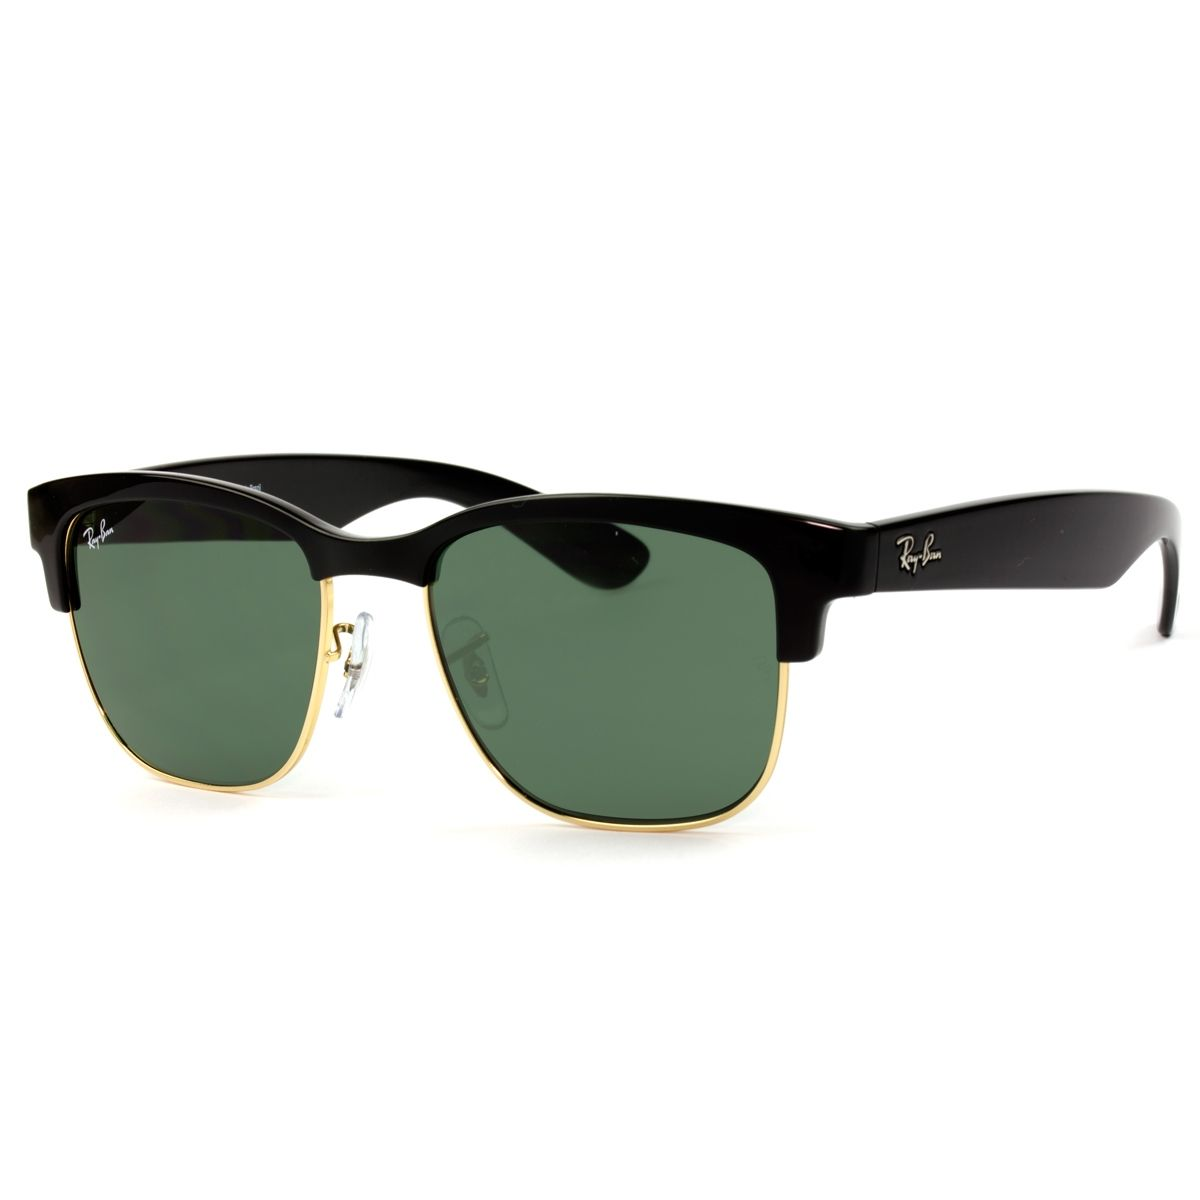 Óculos de Sol Ray Ban   Óculos de Sol Ray Ban Clubmaster RB4239L-601 ... 04be74e940